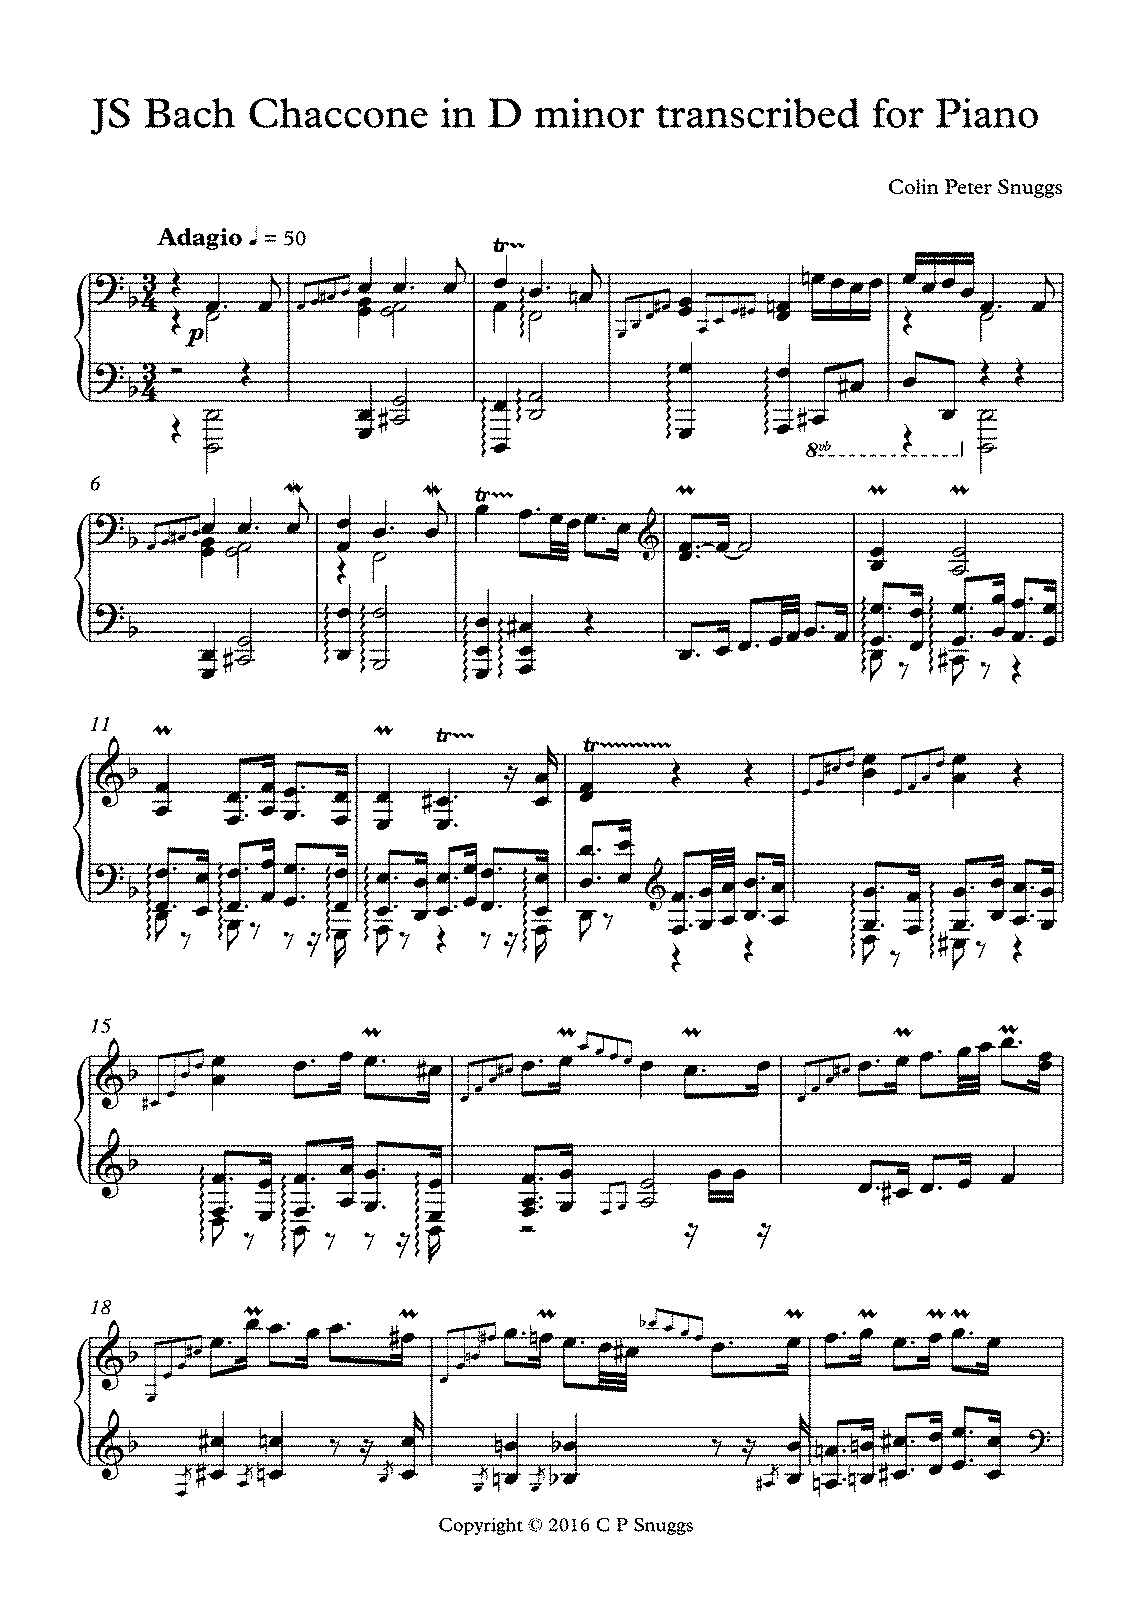 PMLP697190-JS Bach Chaccone in D minor BWV 1004 Transcribed for piano.pdf